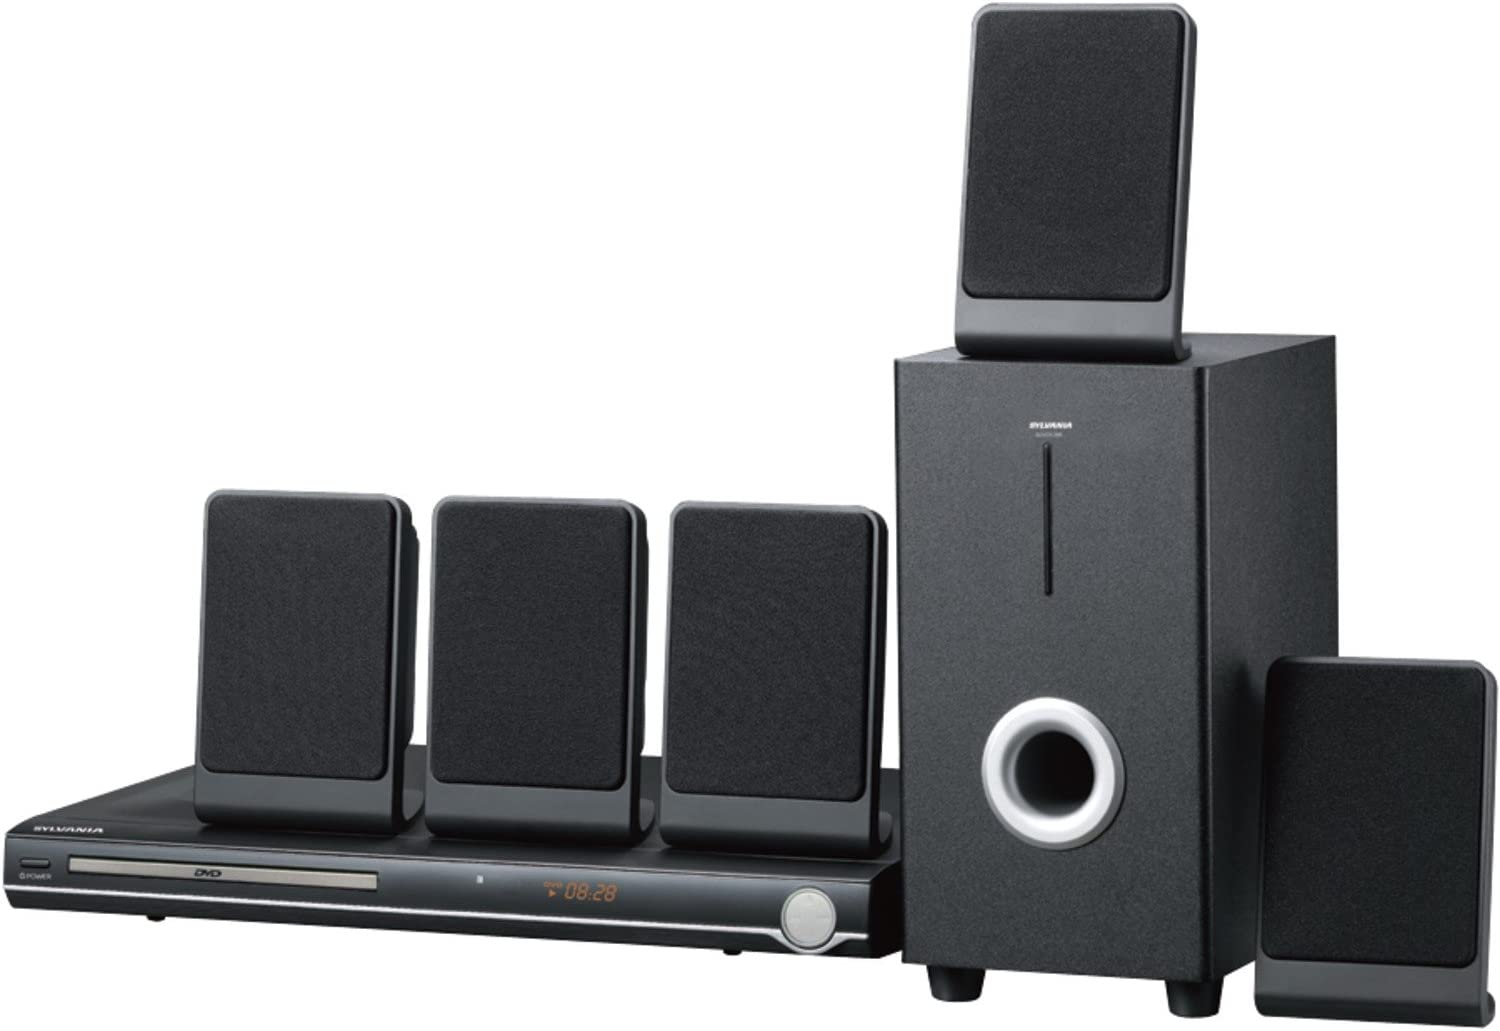 Sylvania Curtis 5.1 Channel Progressive Scan DVD Mini Bookshelf Home Theater Speaker System w/Subwoofer & Remote Control